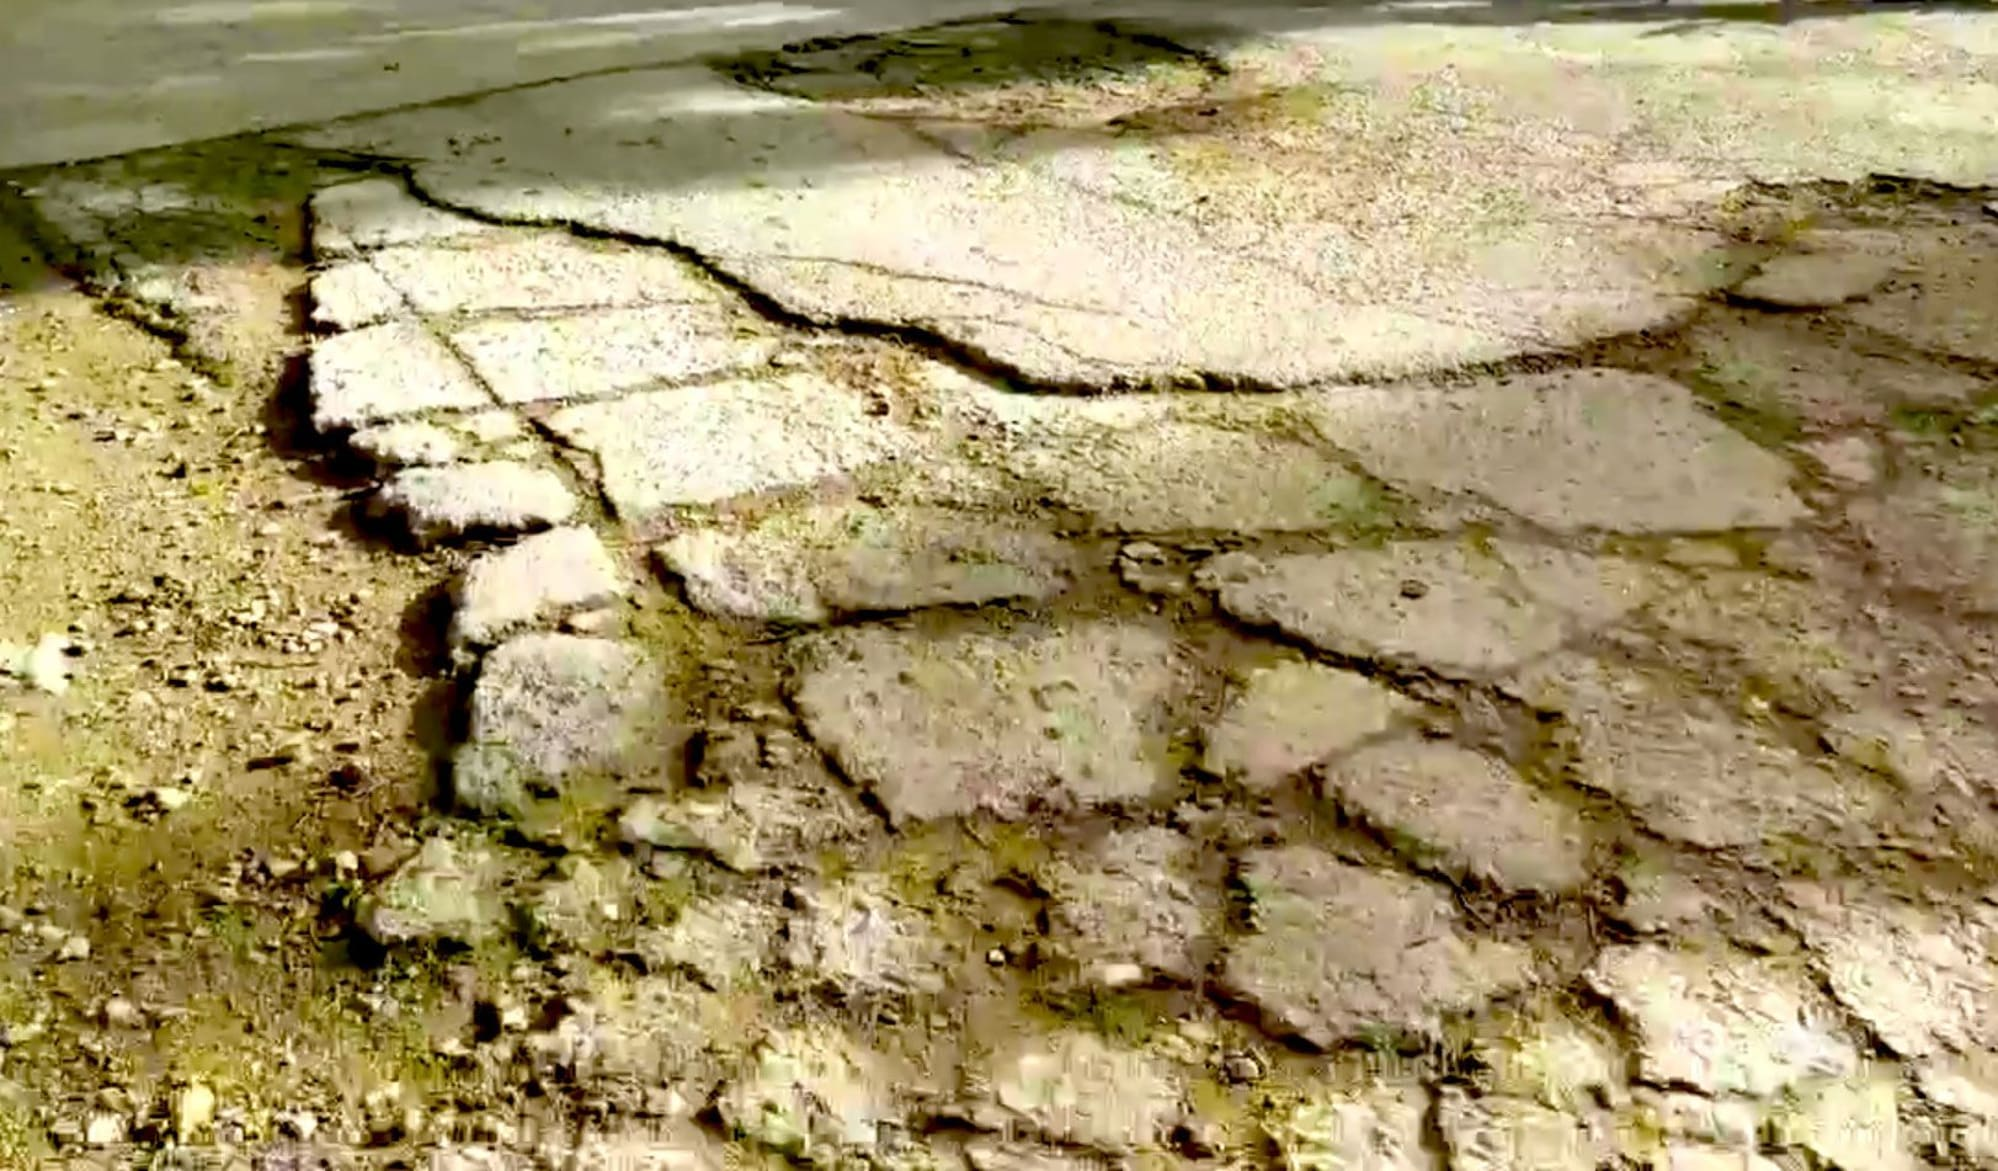 Dilapidated Roads on Brgy. Manocmanoc will not be Neglected - DPWH